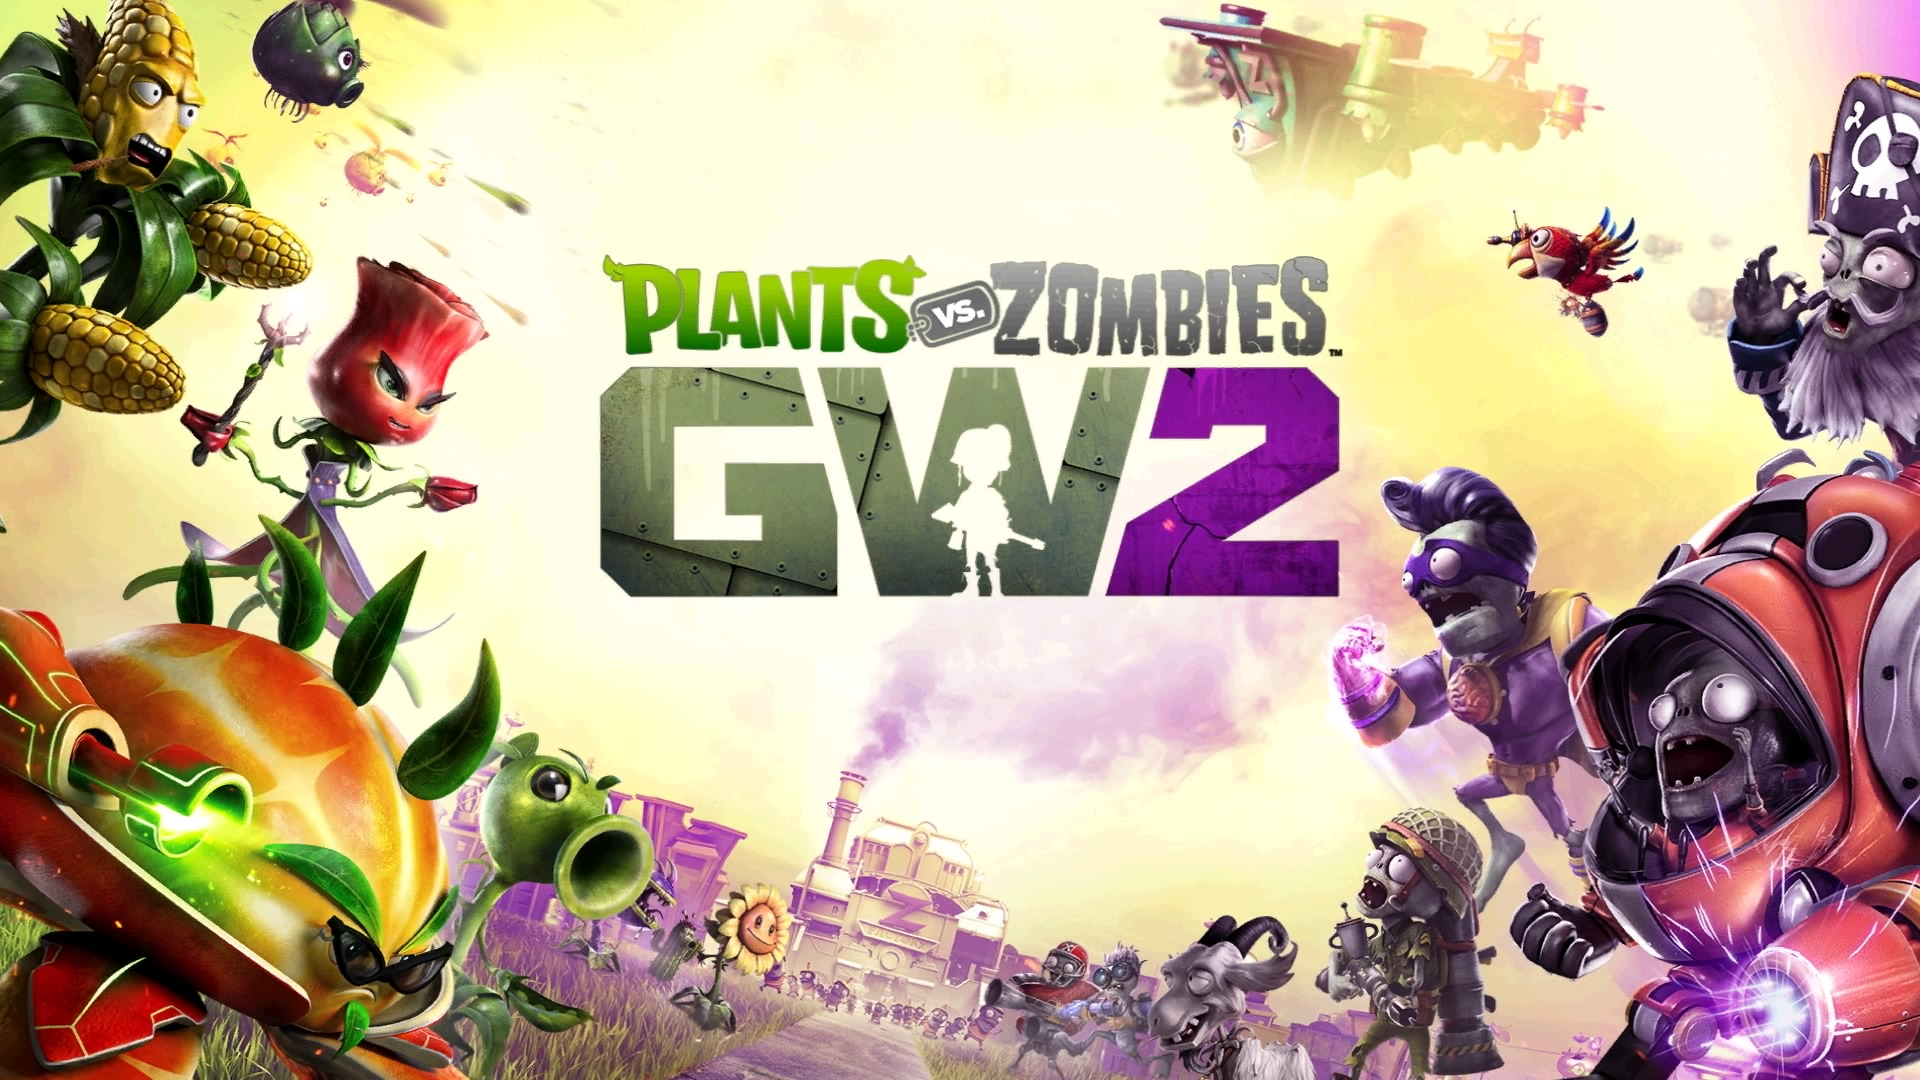 Plants vs zombies garden warfare 2 review expanding on a solid foundation the koalition for Plants vs zombies garden warfare 2 review